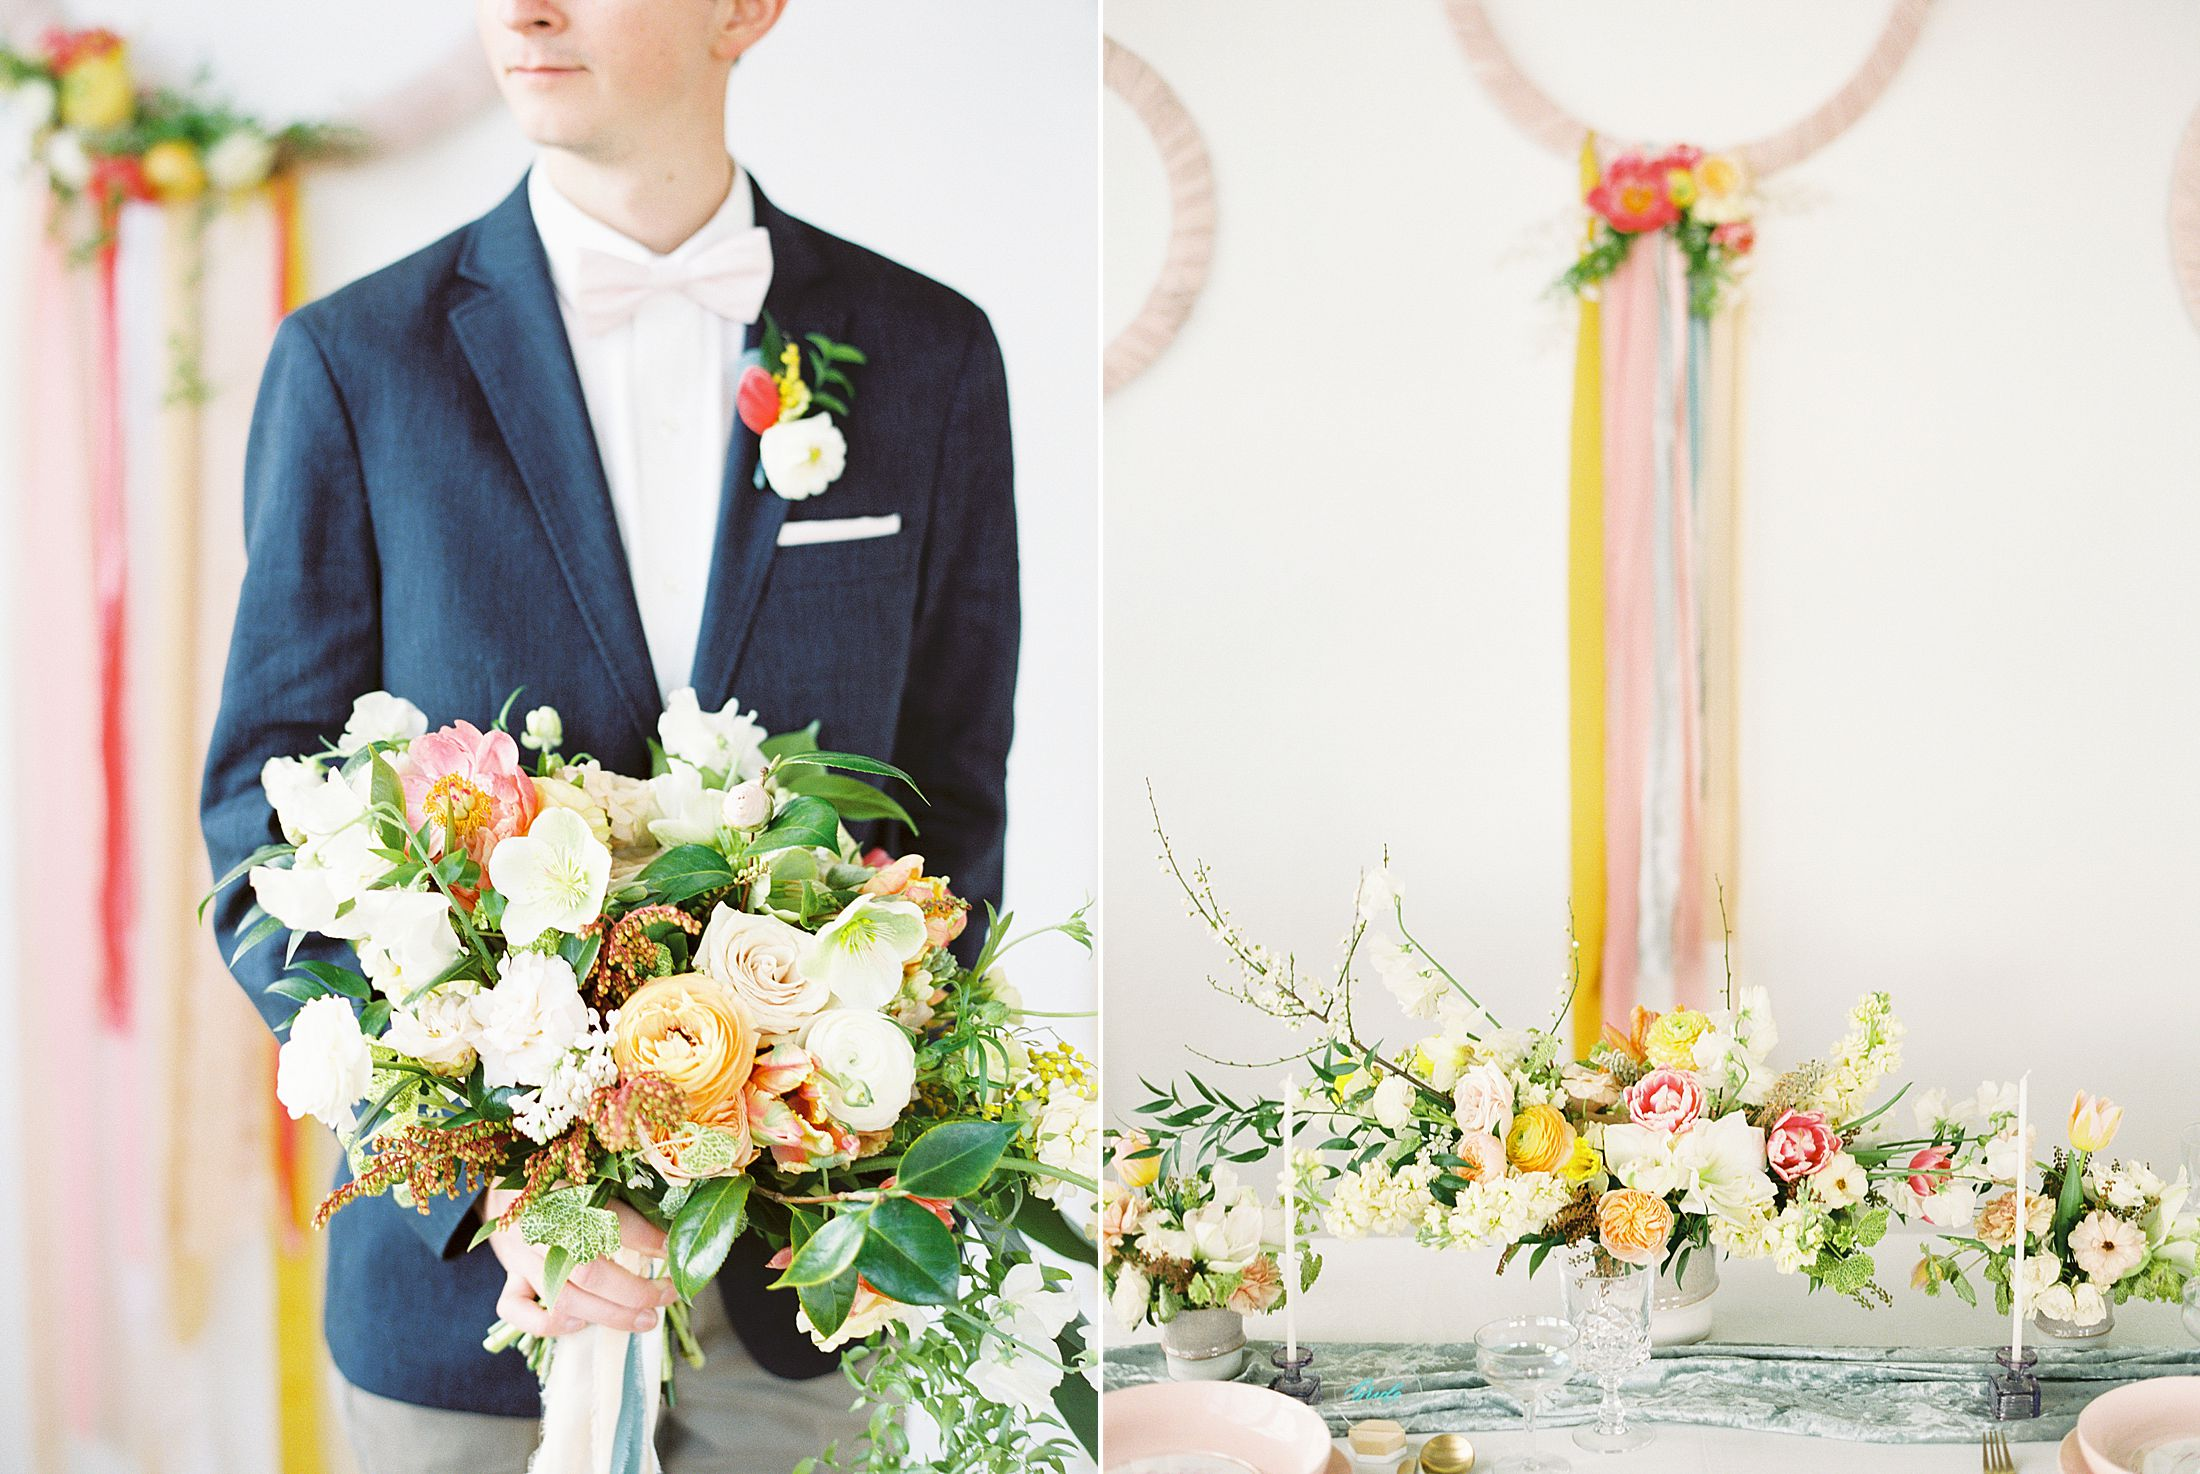 Bay Area Spring Wedding Inspiration - Ashley Baumgartner - Inspired By This - Party Crush Studio and Lens of Lenox Videography - Bay Area Wedding Photography_0065.jpg